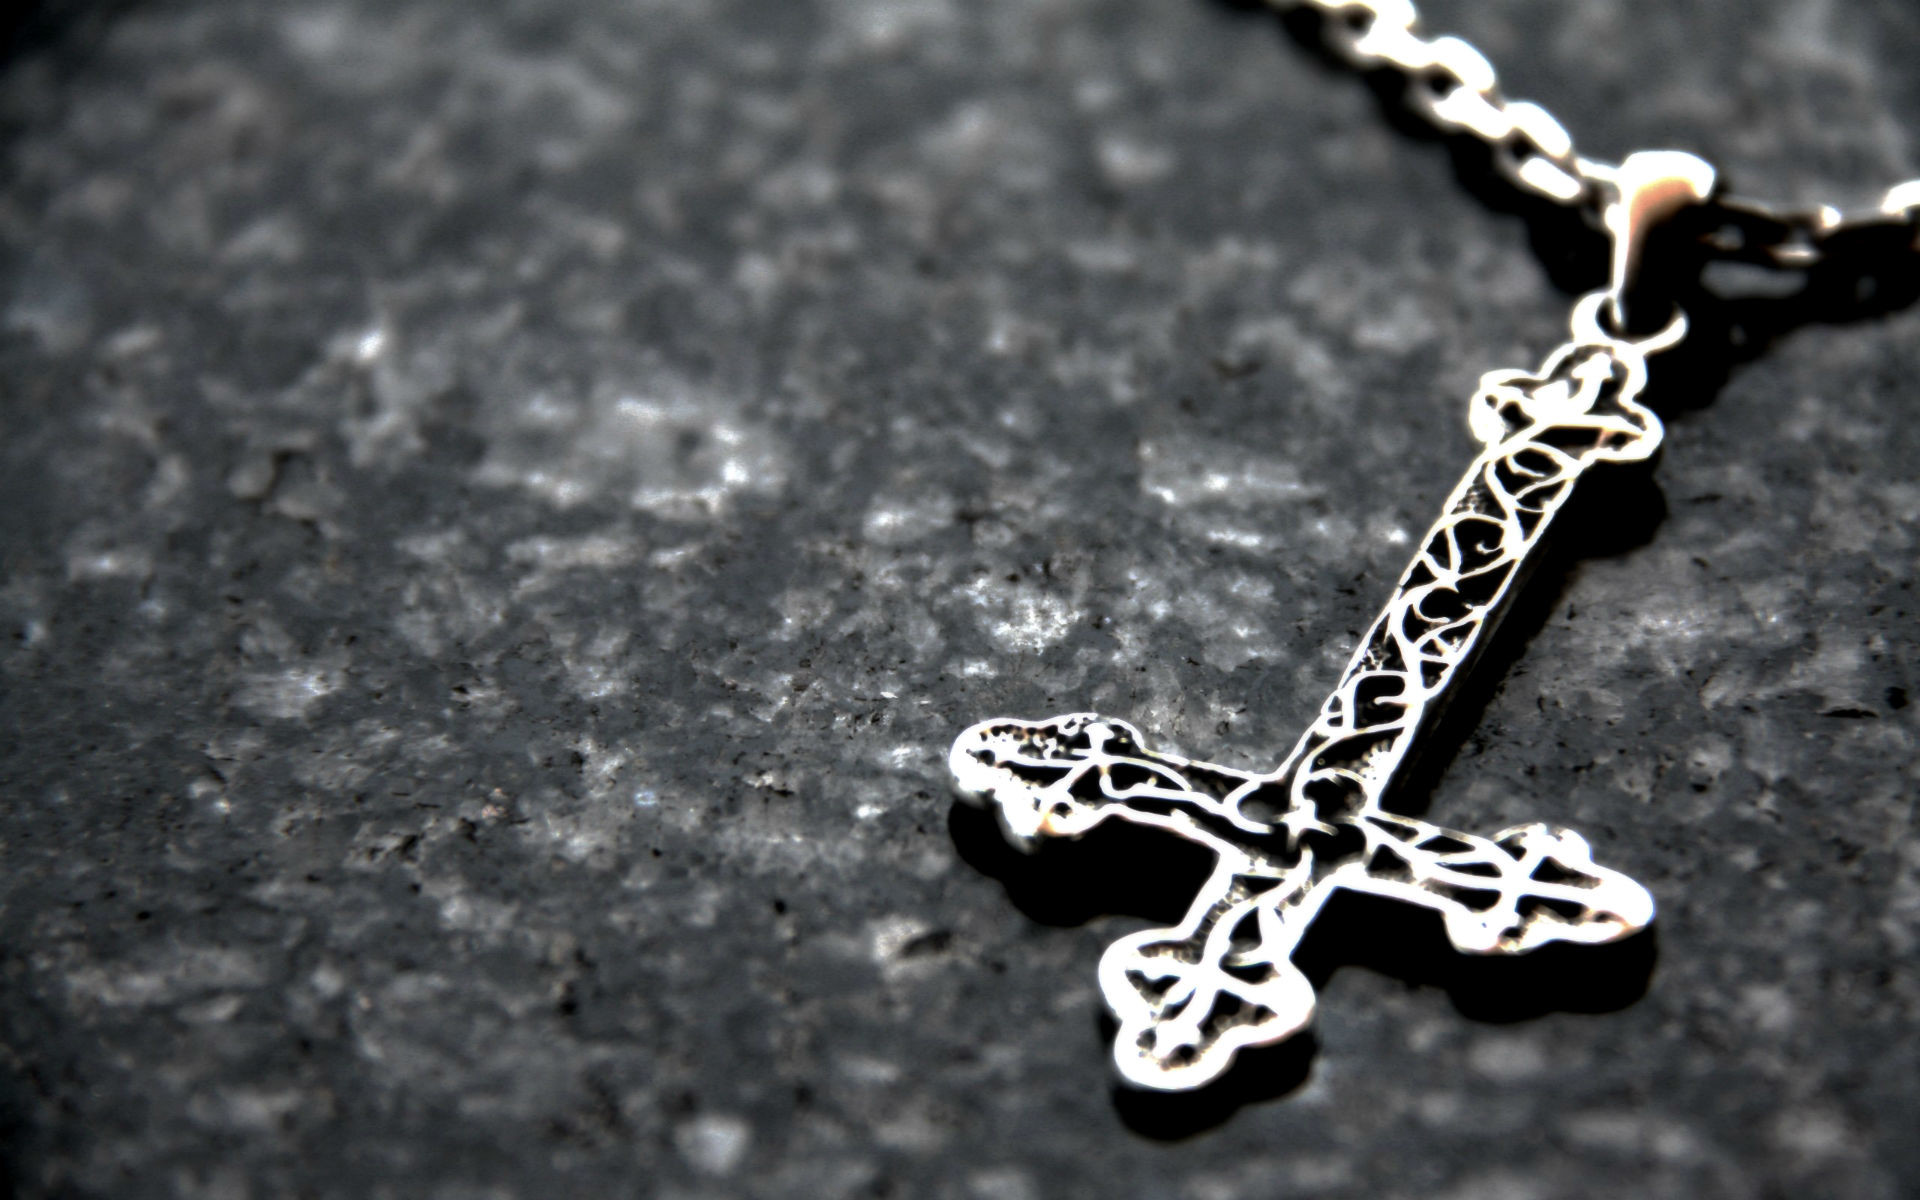 Cross Wallpaper for PC   Full HD Pictures